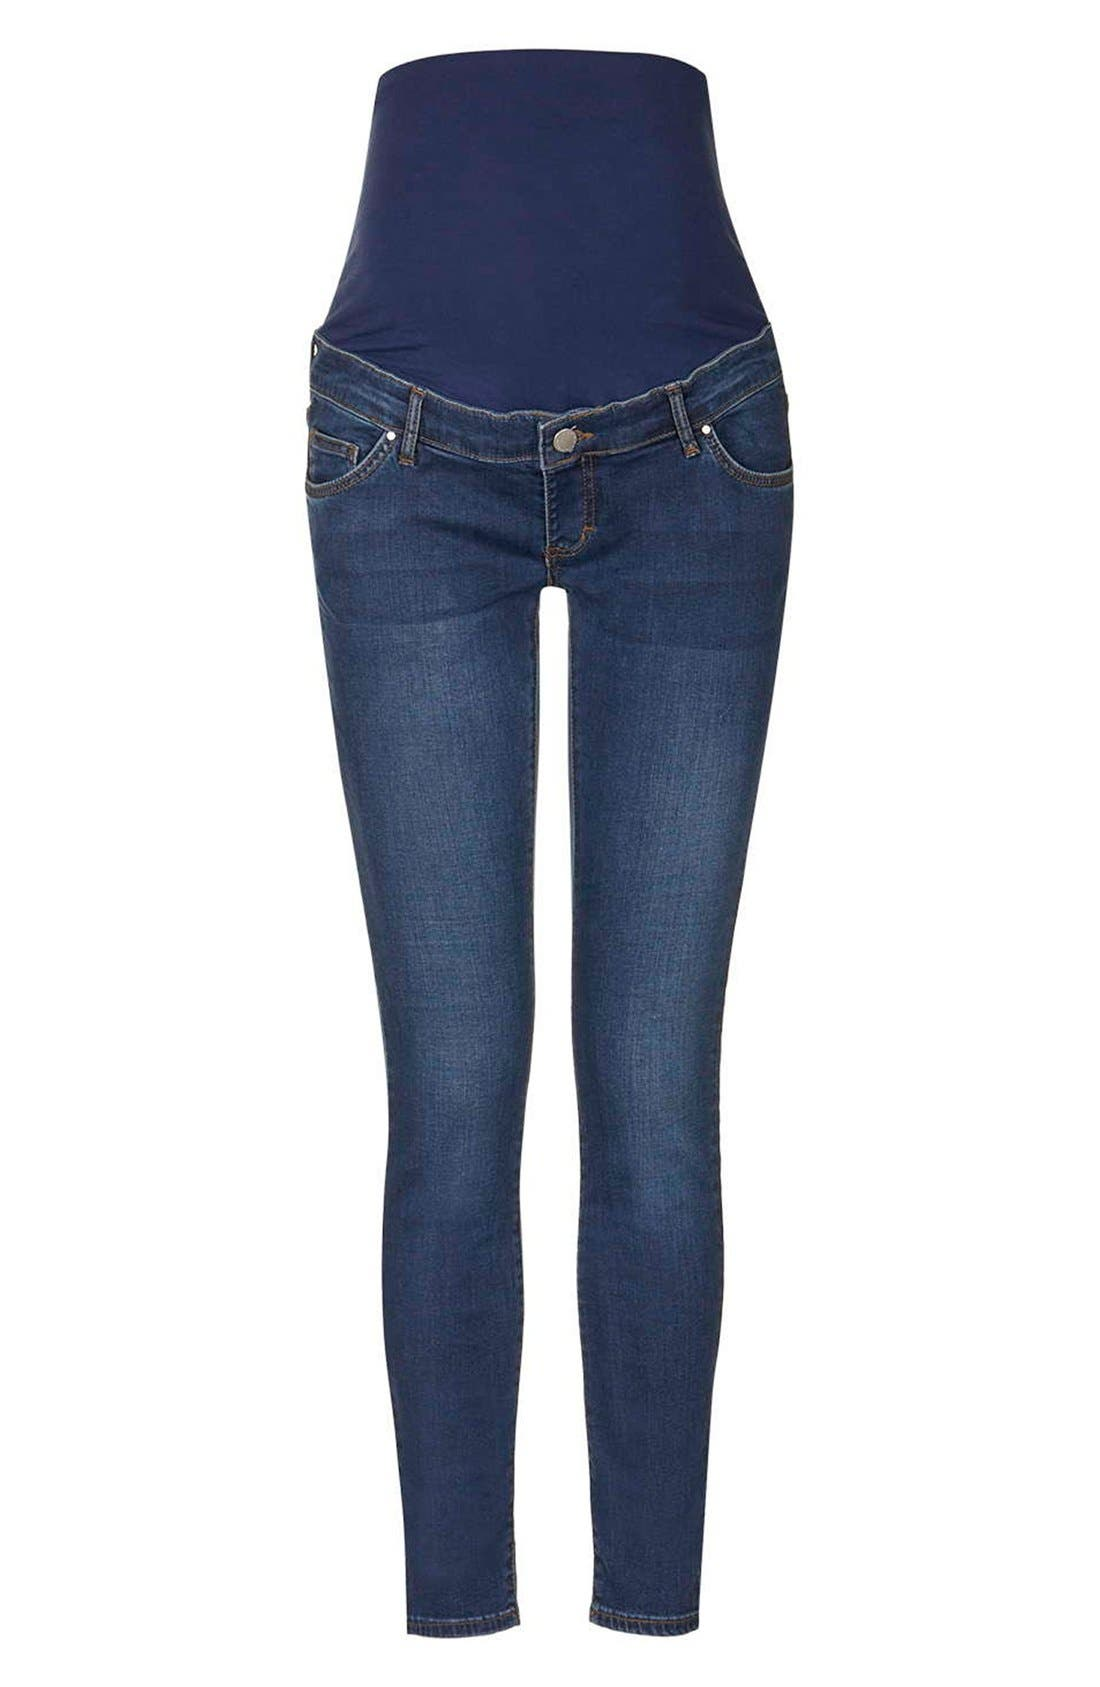 'Leigh' Skinny Maternity Jeans,                         Main,                         color, Dark Denim